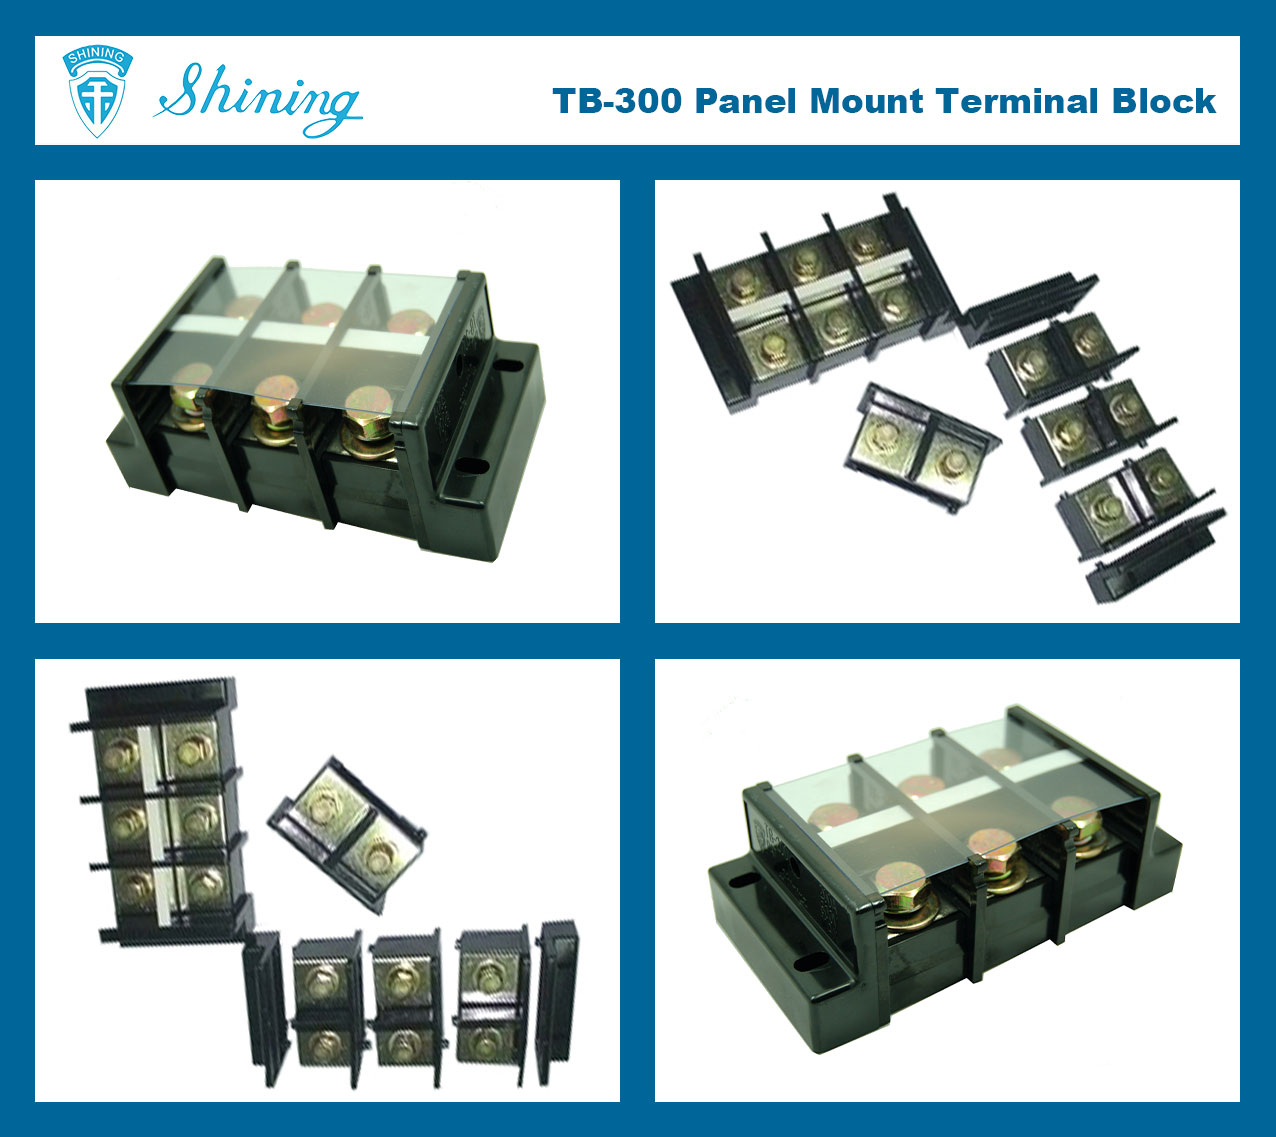 TB-300-Cable-Connector-600V-60A-Barrier-Assembly-Terminal%20Block-Multi-Photo